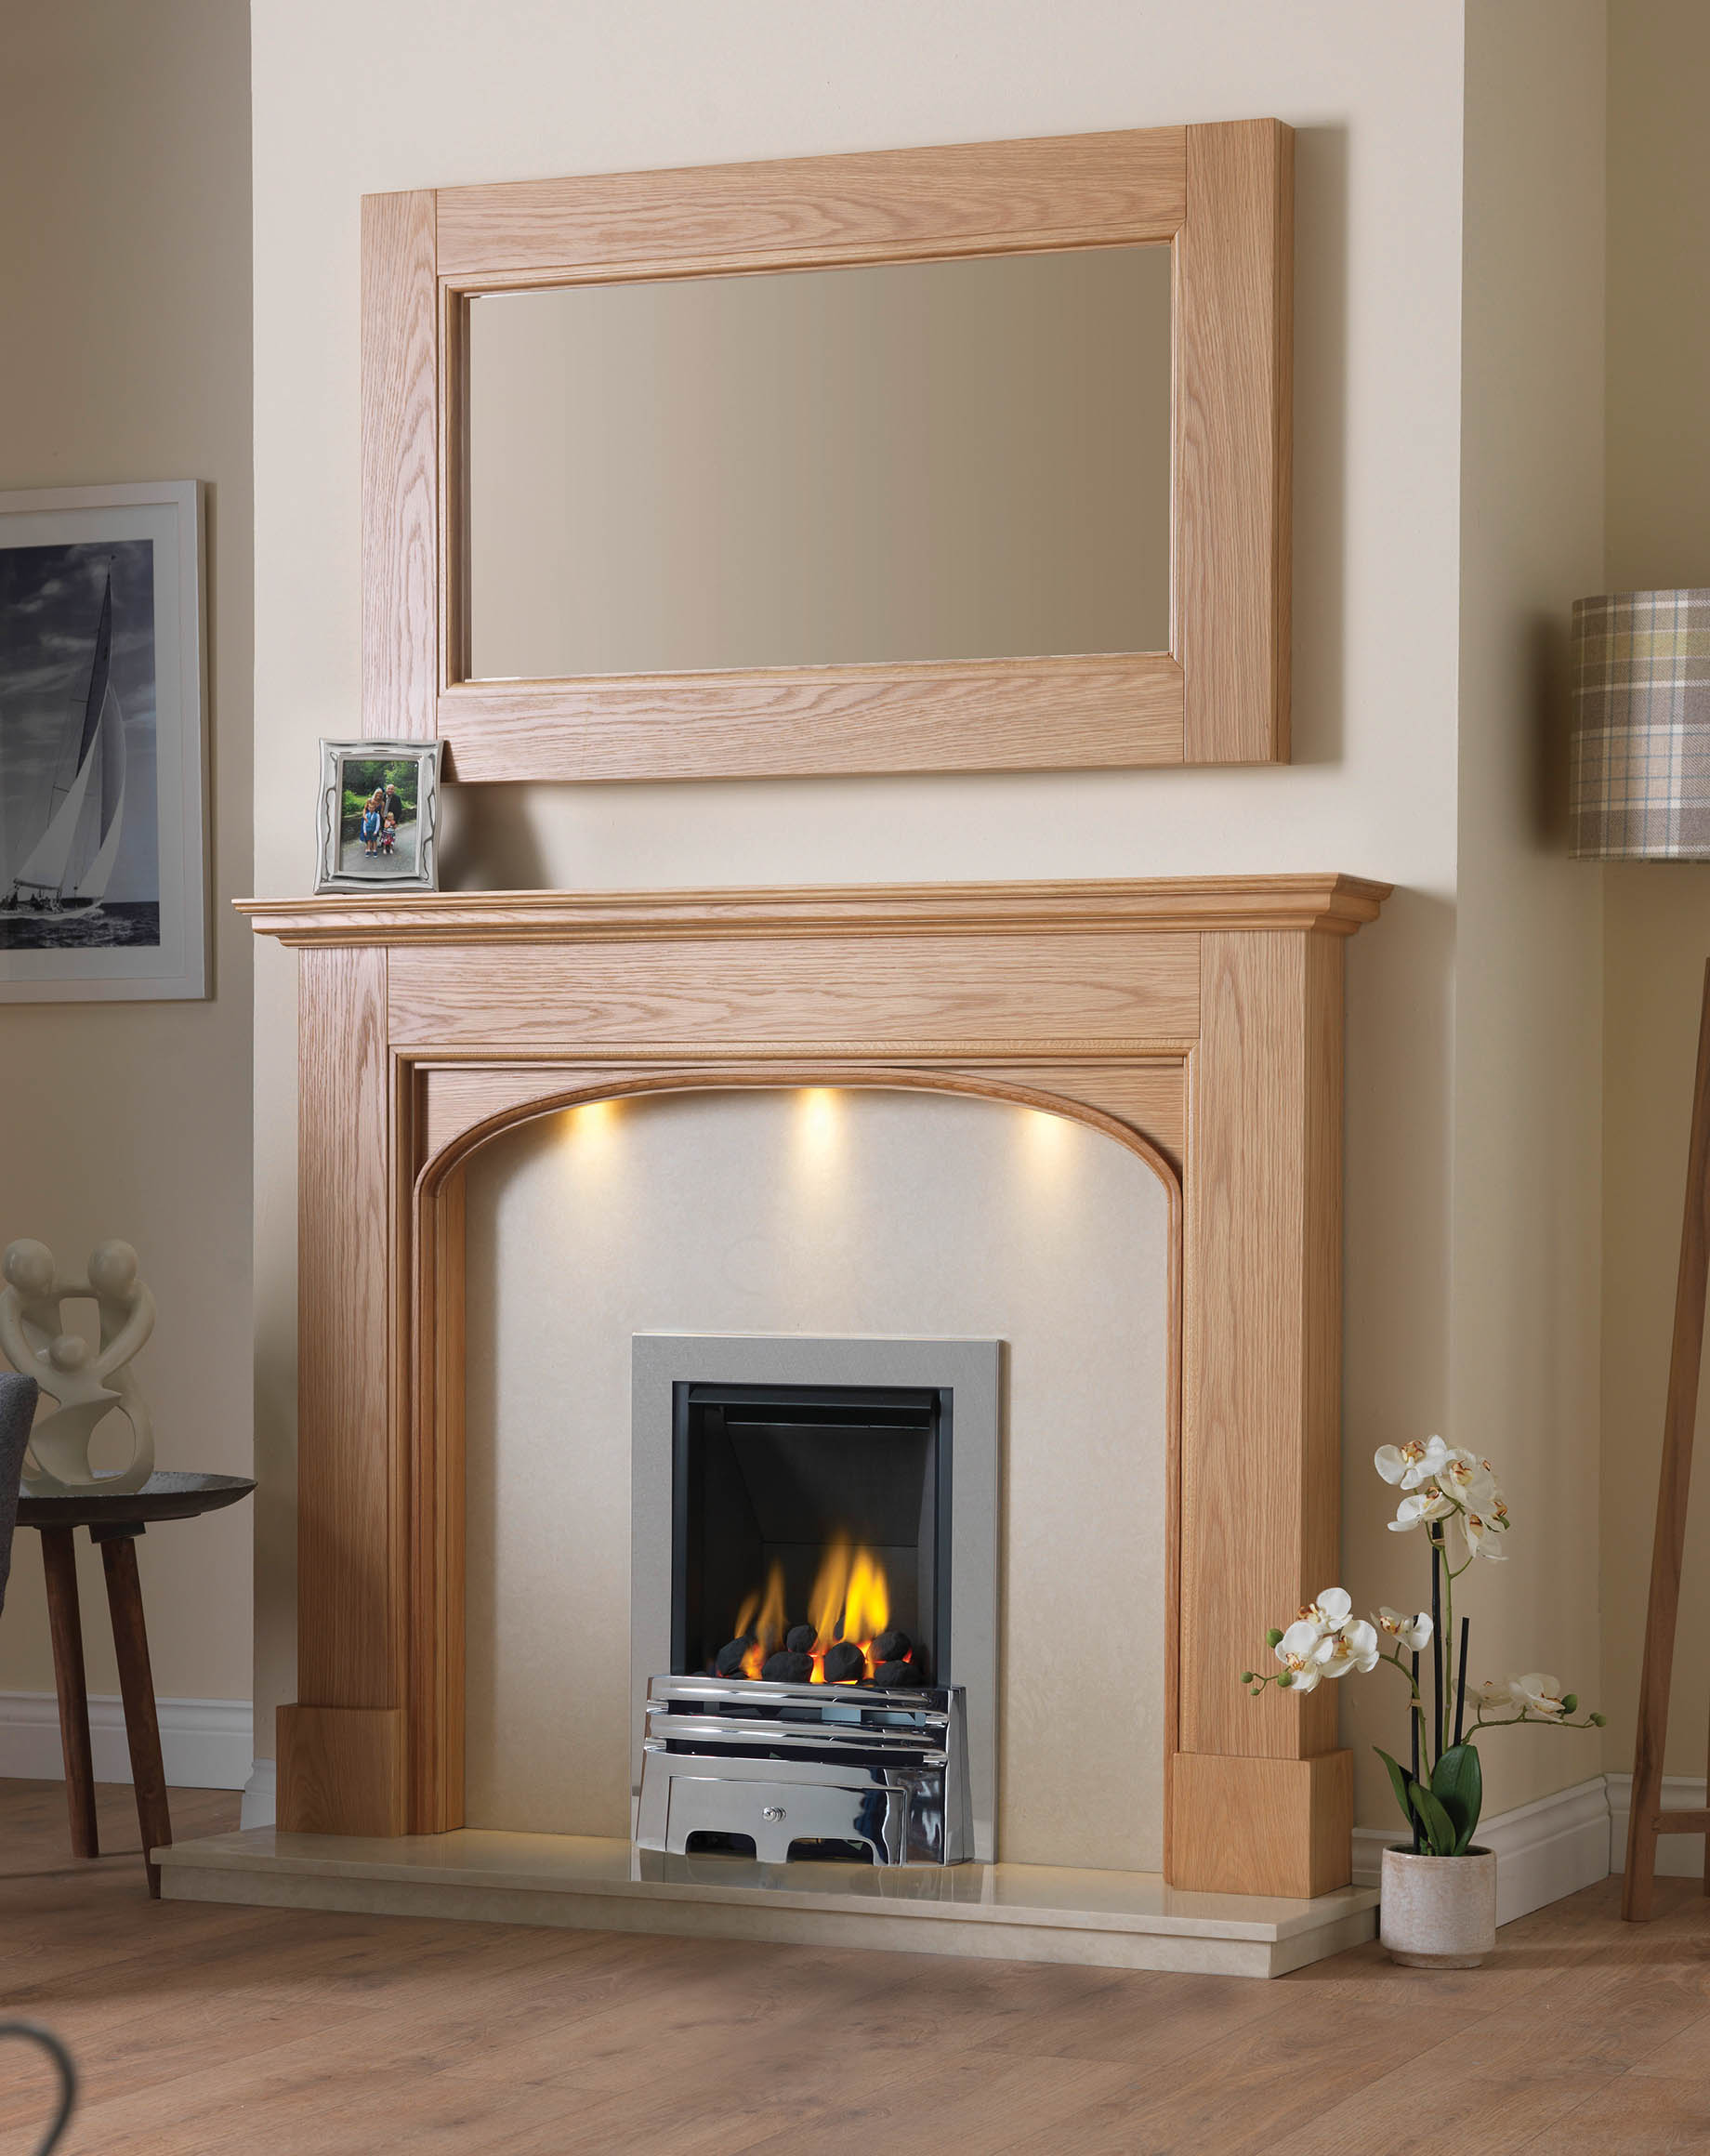 wood fire surrounds and fireplaces fires and surrounds fires